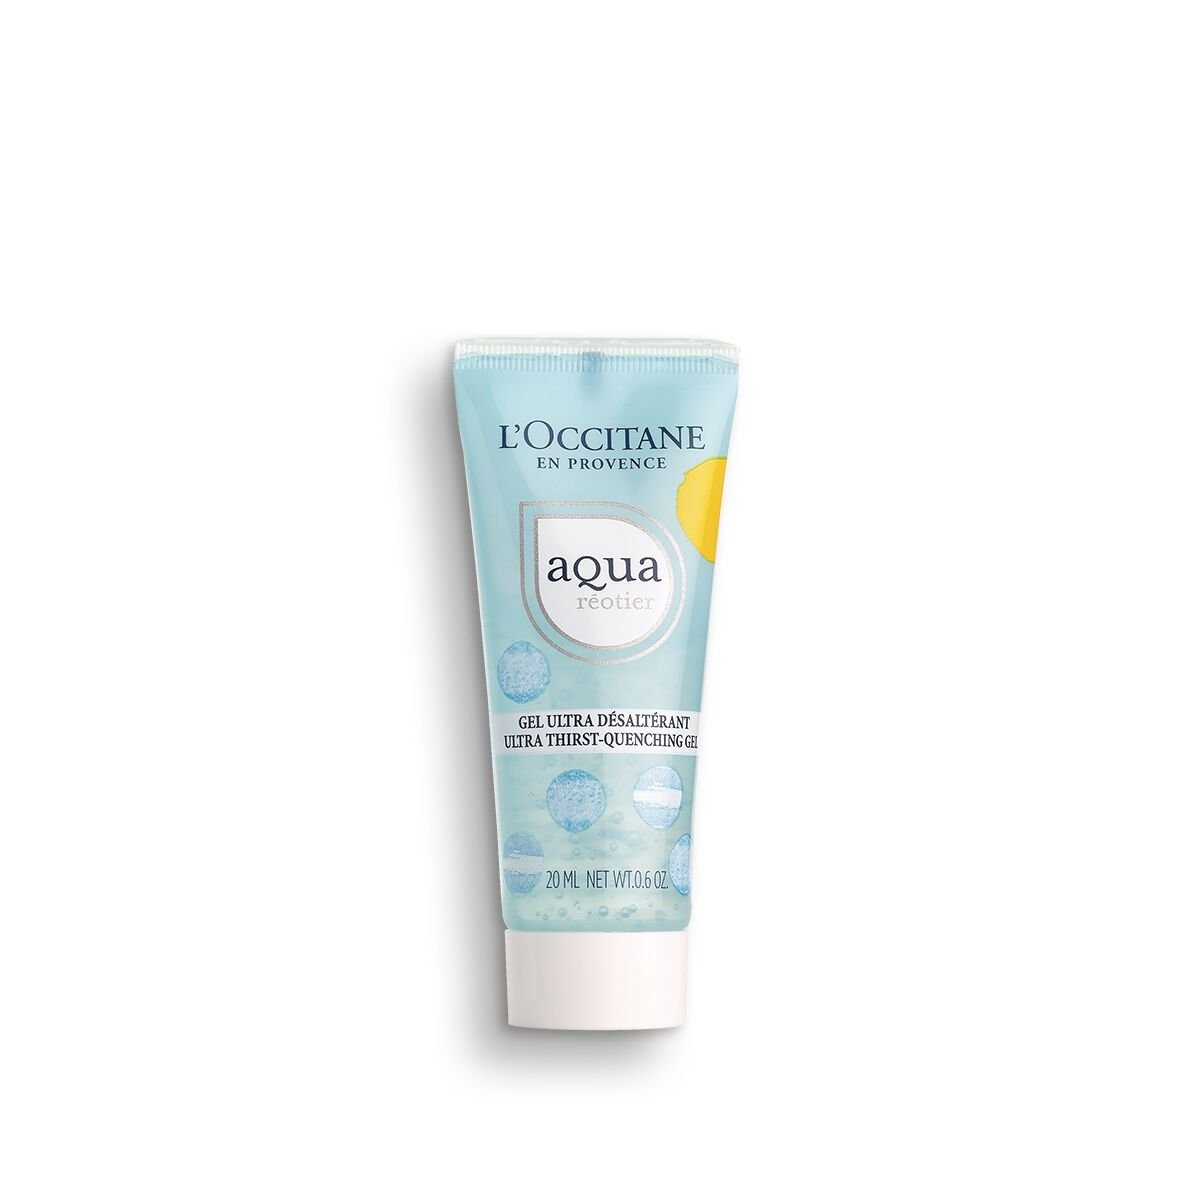 Aqua Réotier Ultra Thirst-Quenching Gel 0.6 oz. from L'OCCITANE